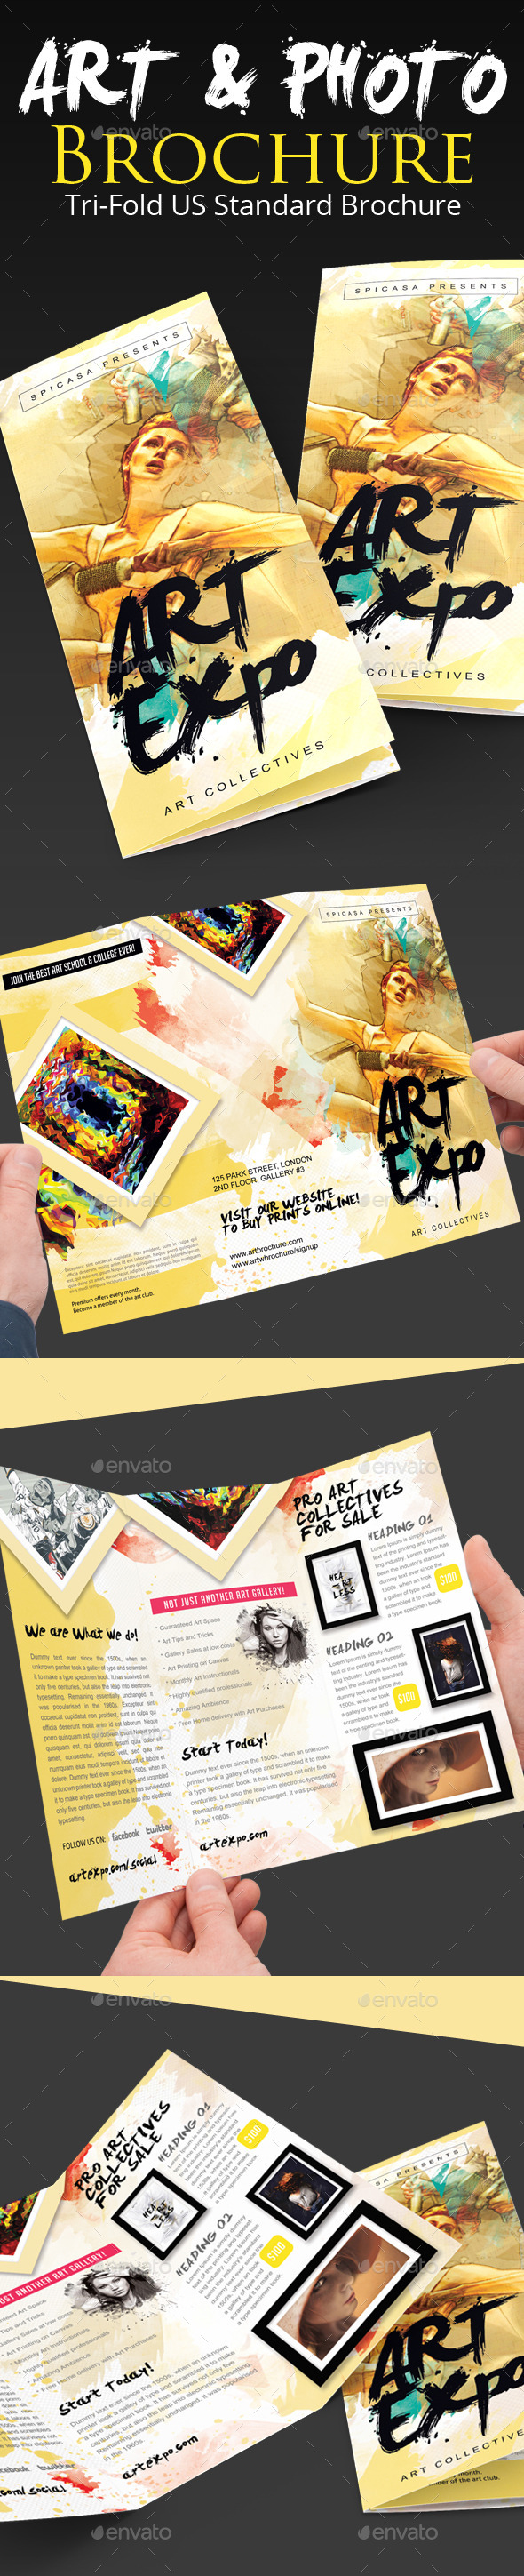 Art Show/Expo Trifold Brochure - Brochures Print Templates